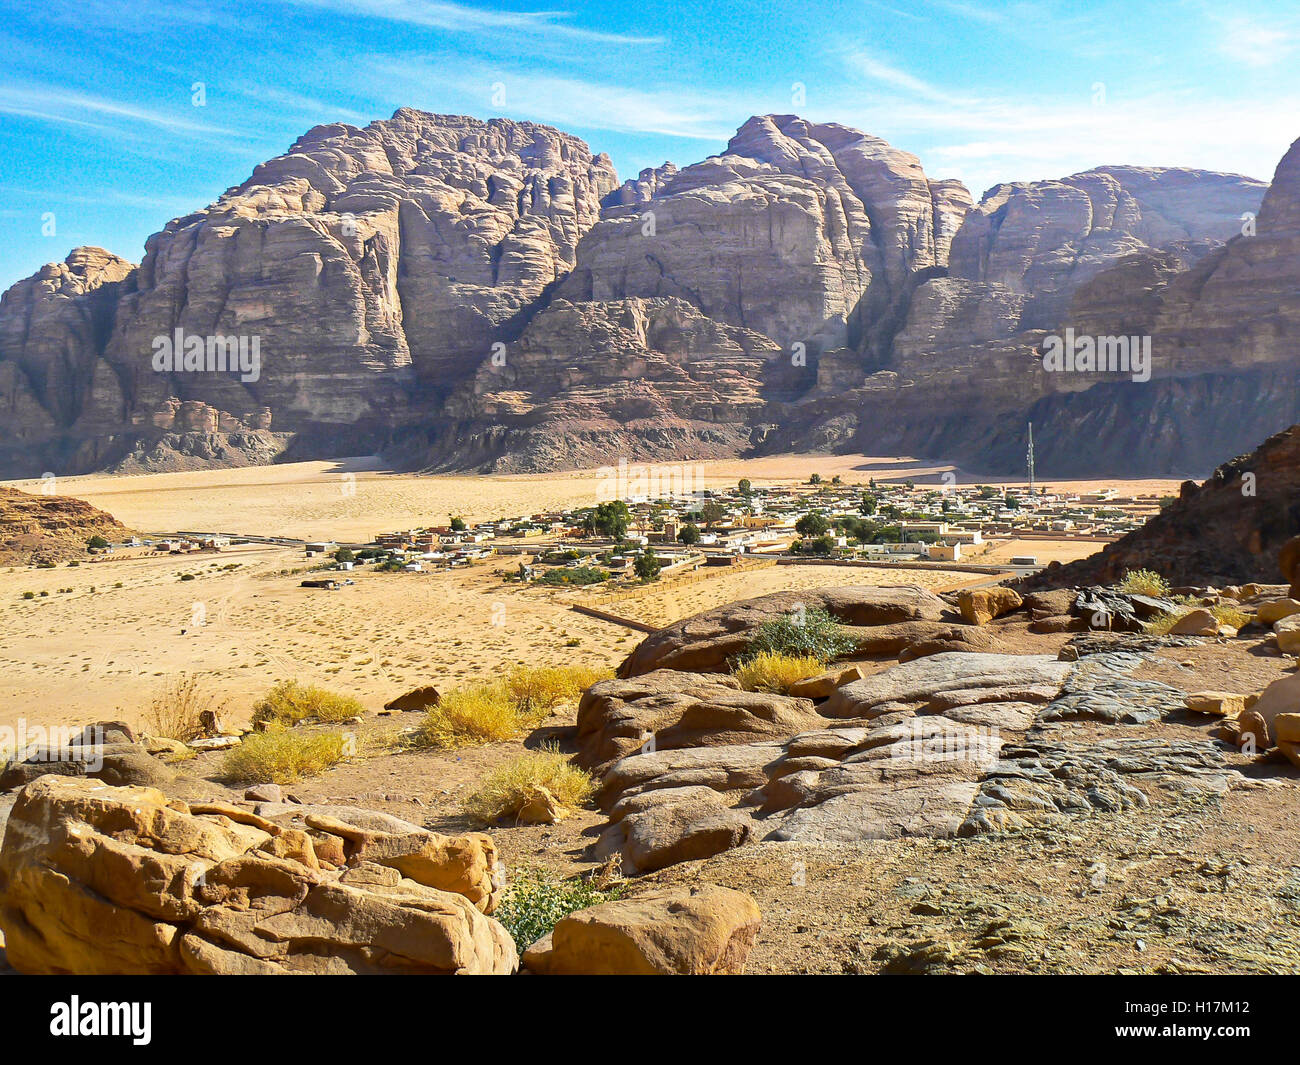 the village of Wadi Rum from above, Jordan - Stock Image